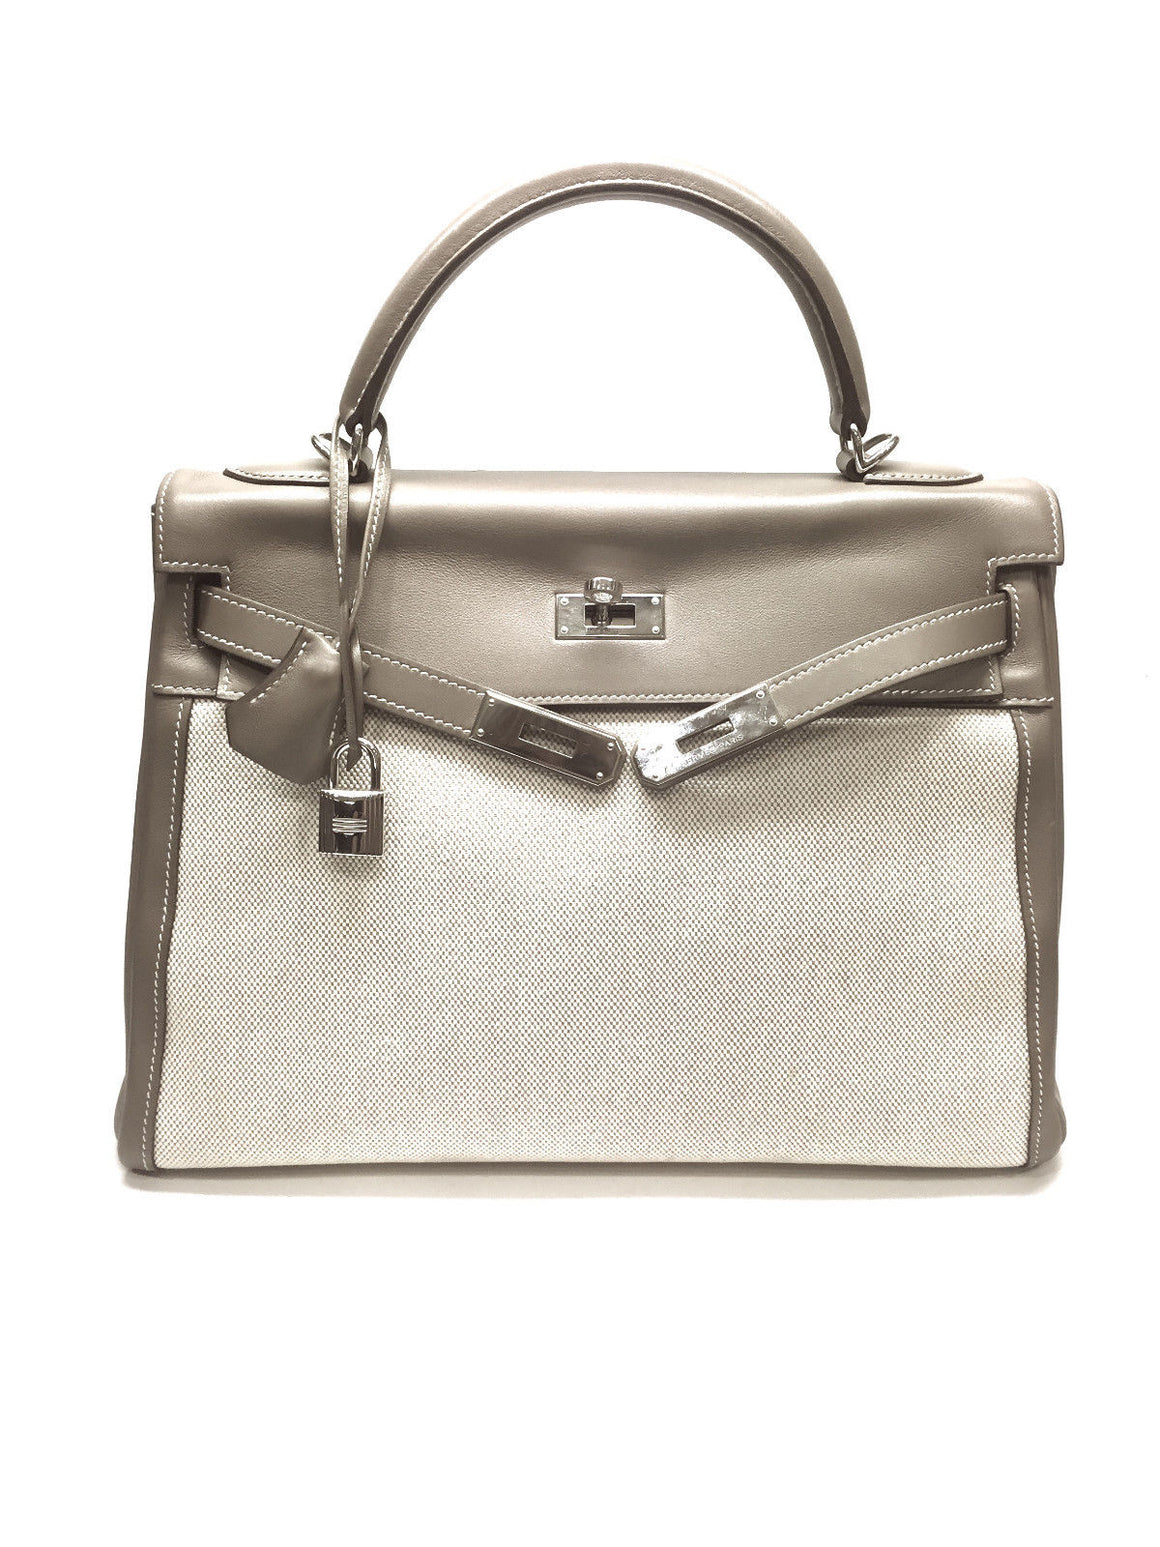 HERMES Taupe Box Calf Leather & Canvas Silver-Tone H/W 32cm KELLY Bag